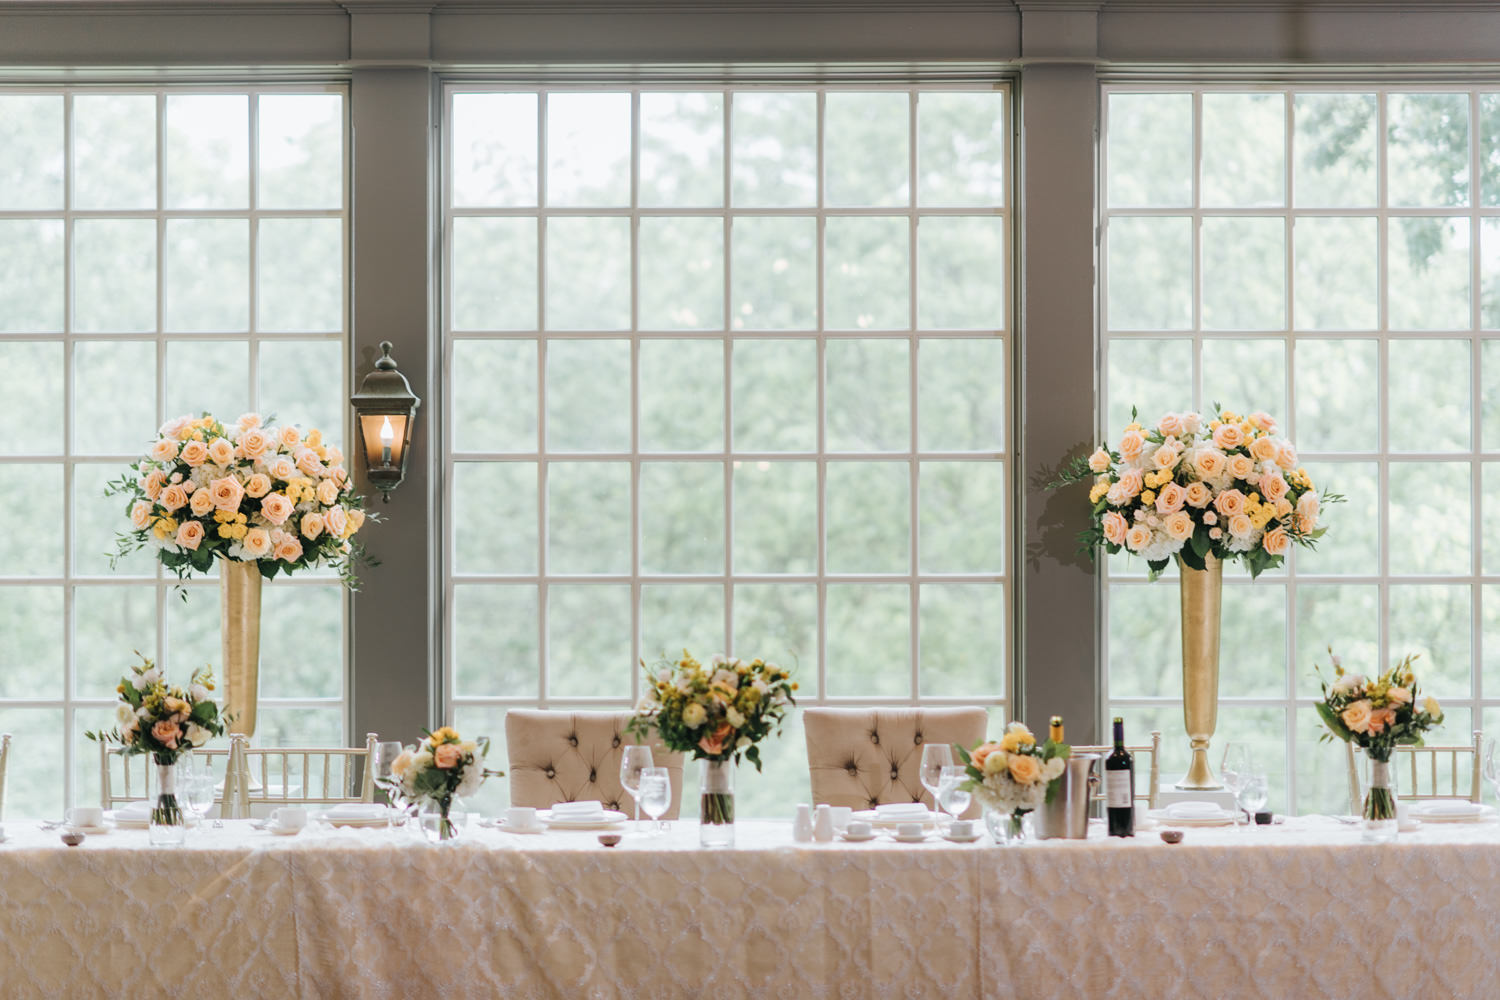 Doctor's House wedding indoor venue decor large french windows